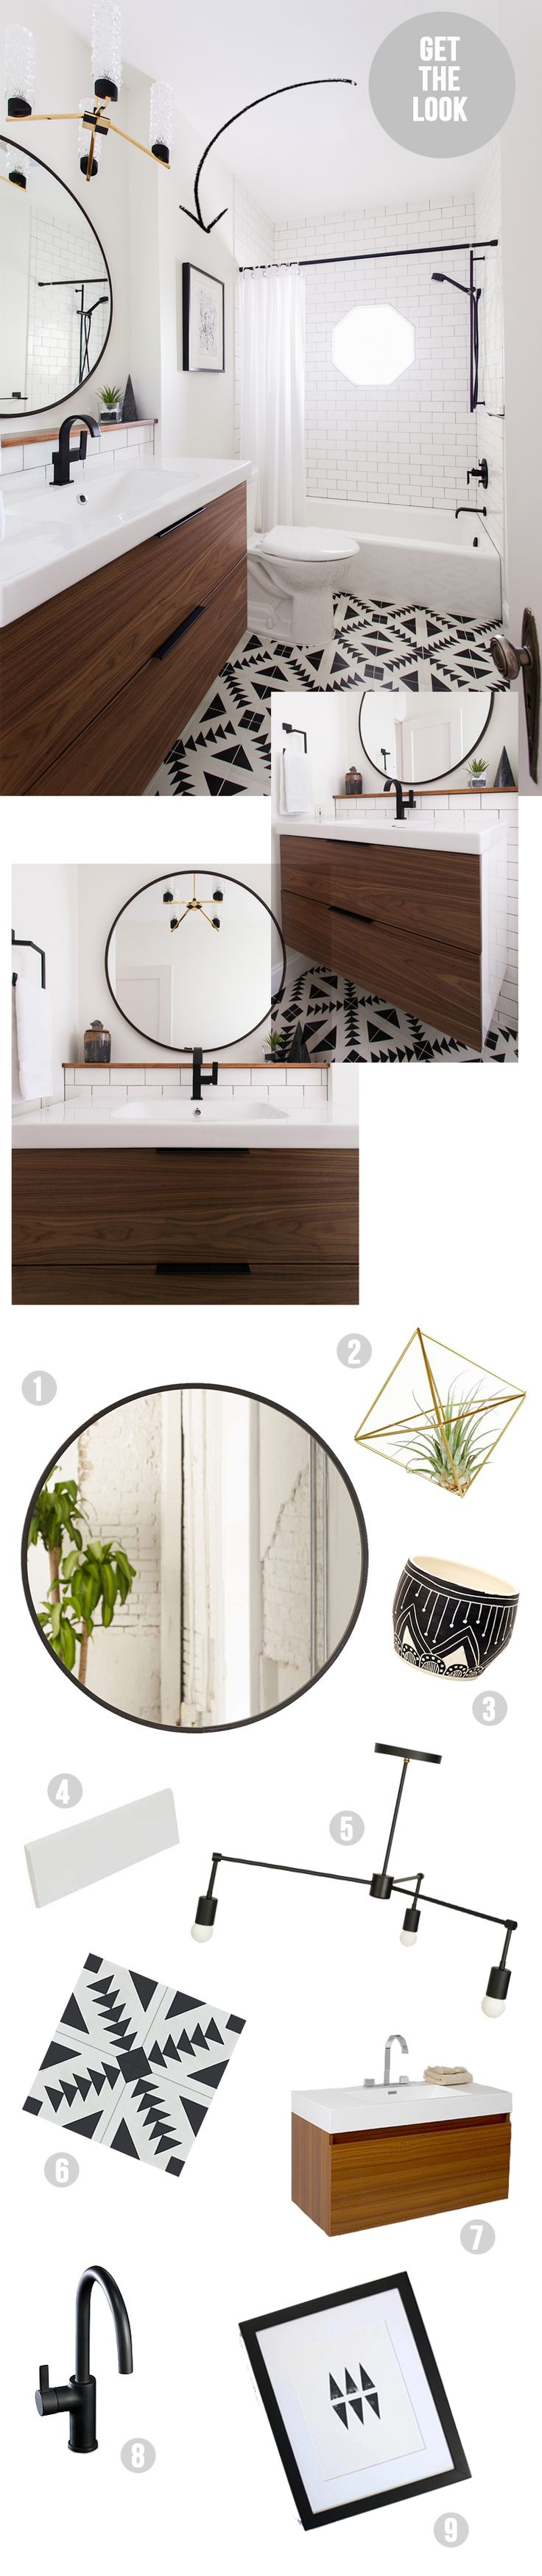 Best 20 Mirrors for bathrooms ideas on Pinterest